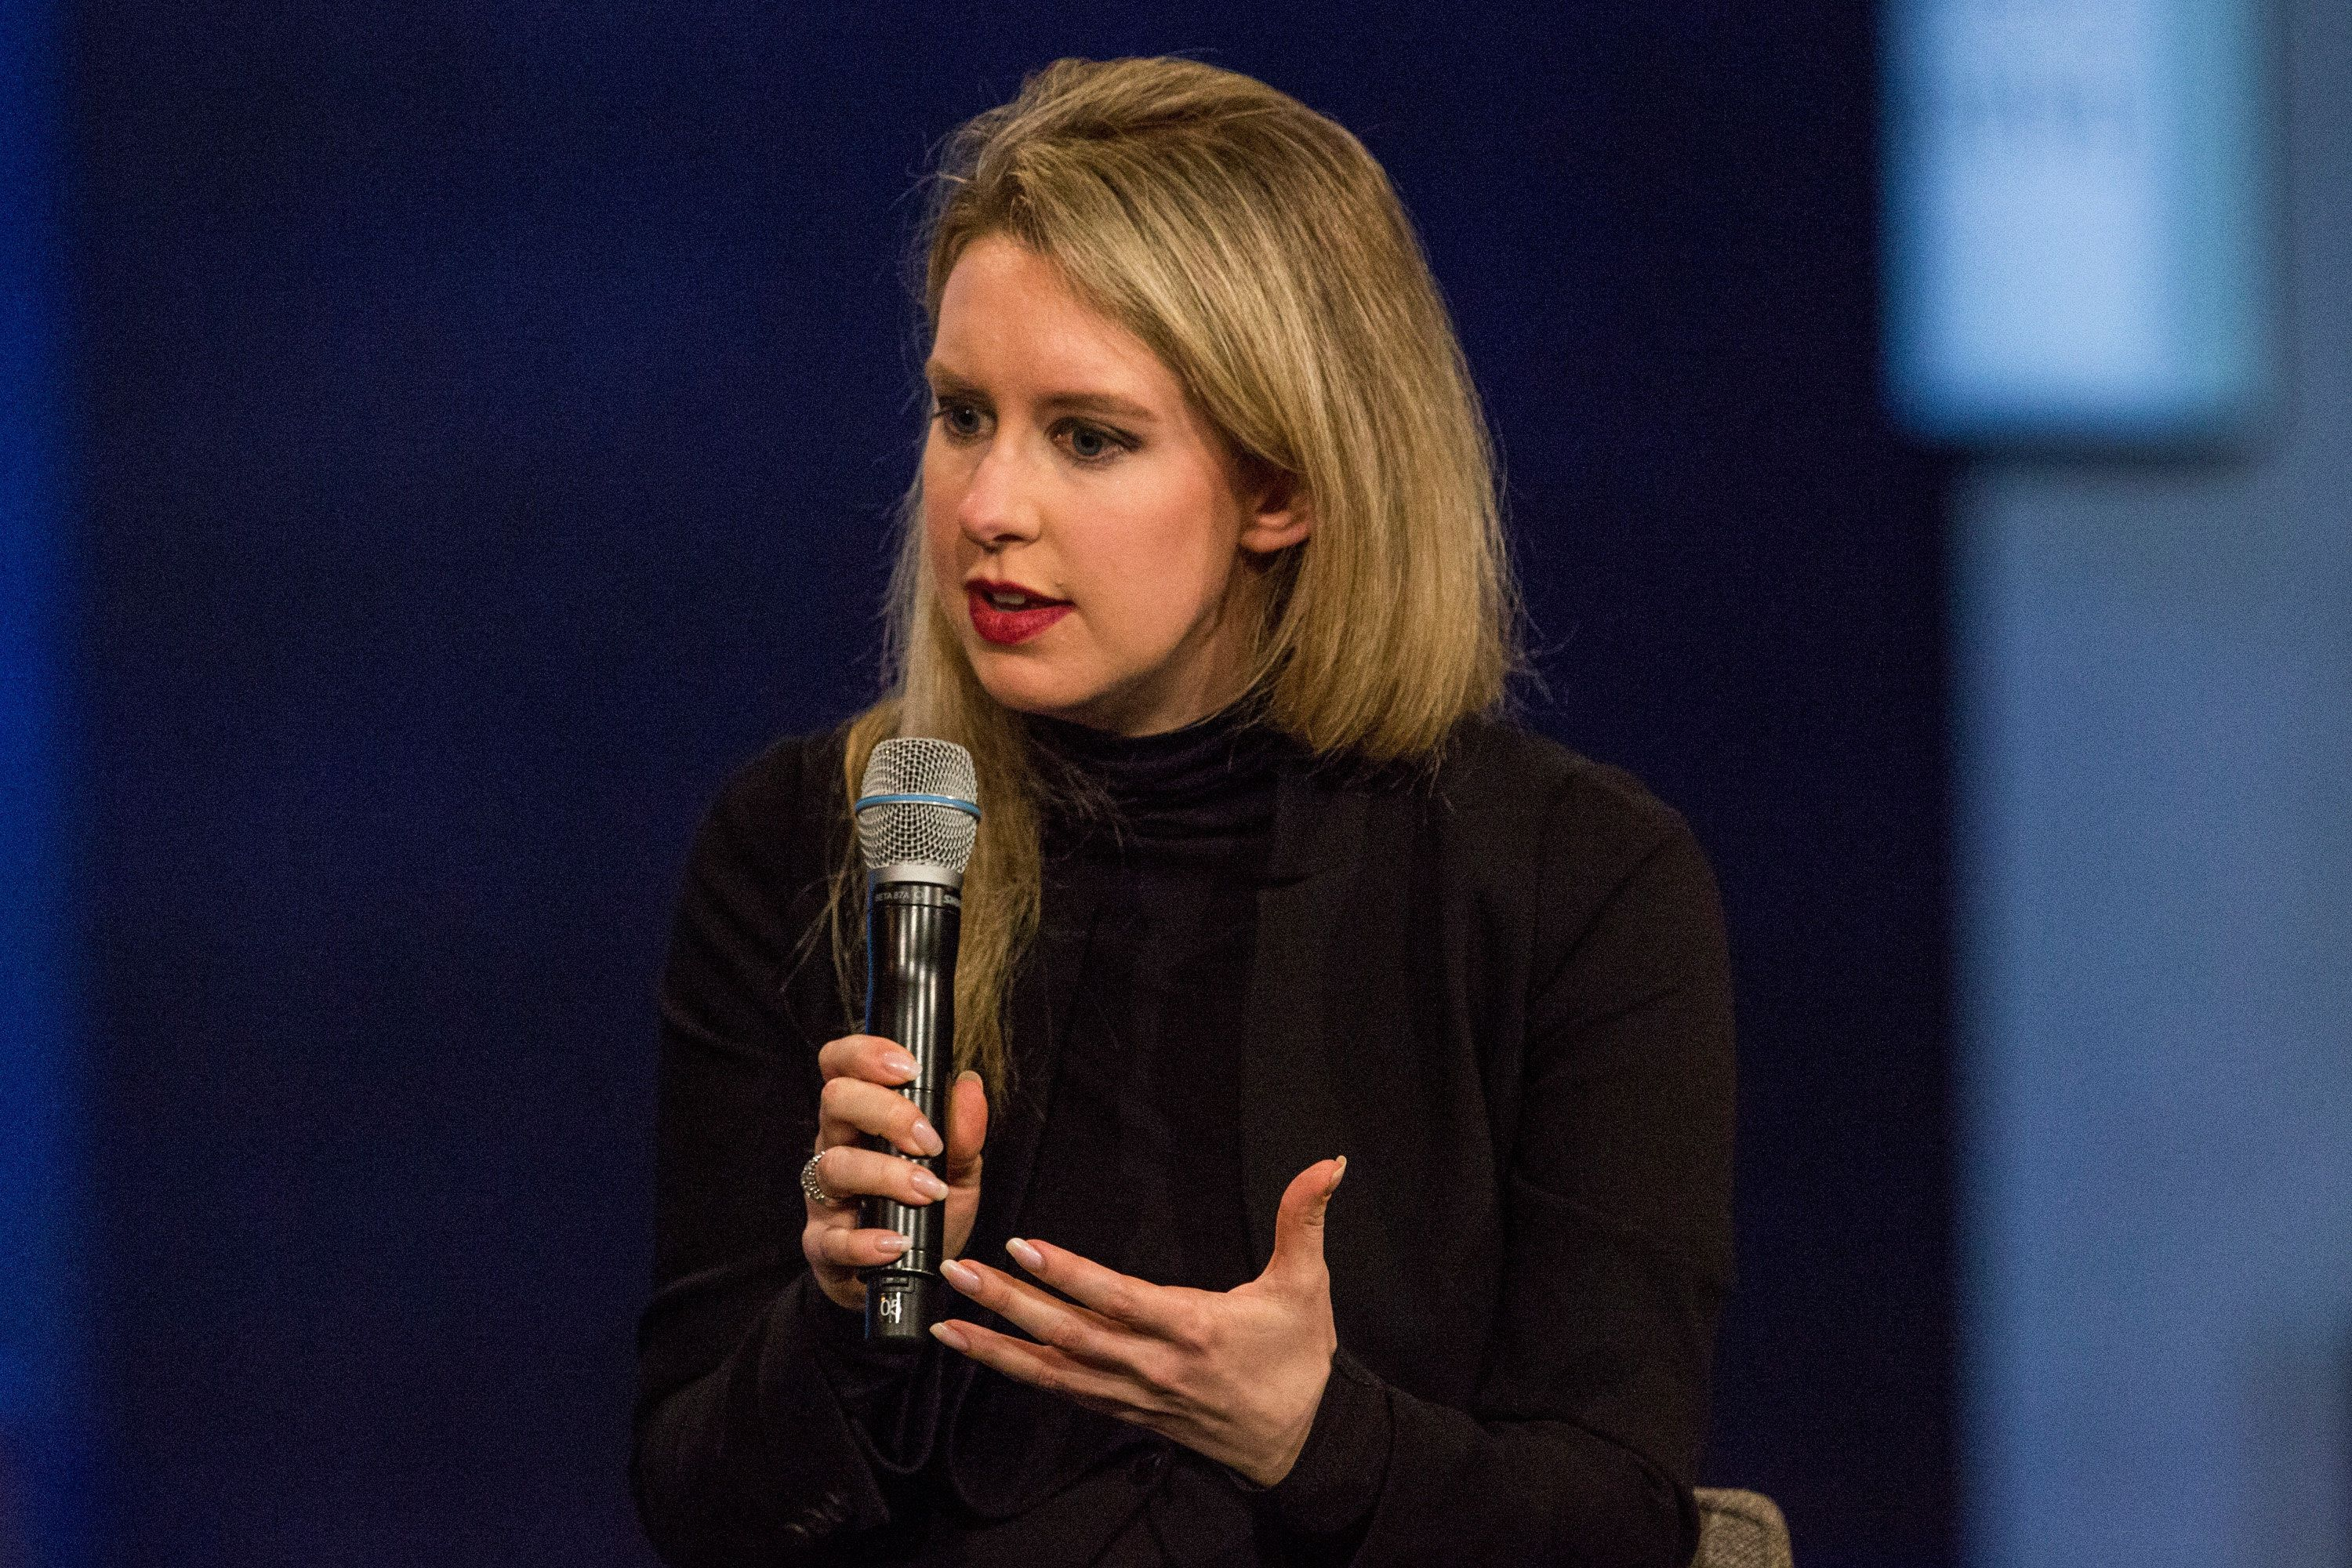 NEW YORK, NY - SEPTEMBER 29:  Elizabeth Holmes, founder and CEO of Theranos, speaks at the Clinton Global Initiative's closing session on September 29, 2015 in New York City. The Clinton Global Initiative, happening simultaneously with the United Nation's General Assembly, invites leaders from politics, business and culture to discuss world issues.  (Photo by Andrew Burton/Getty Images)